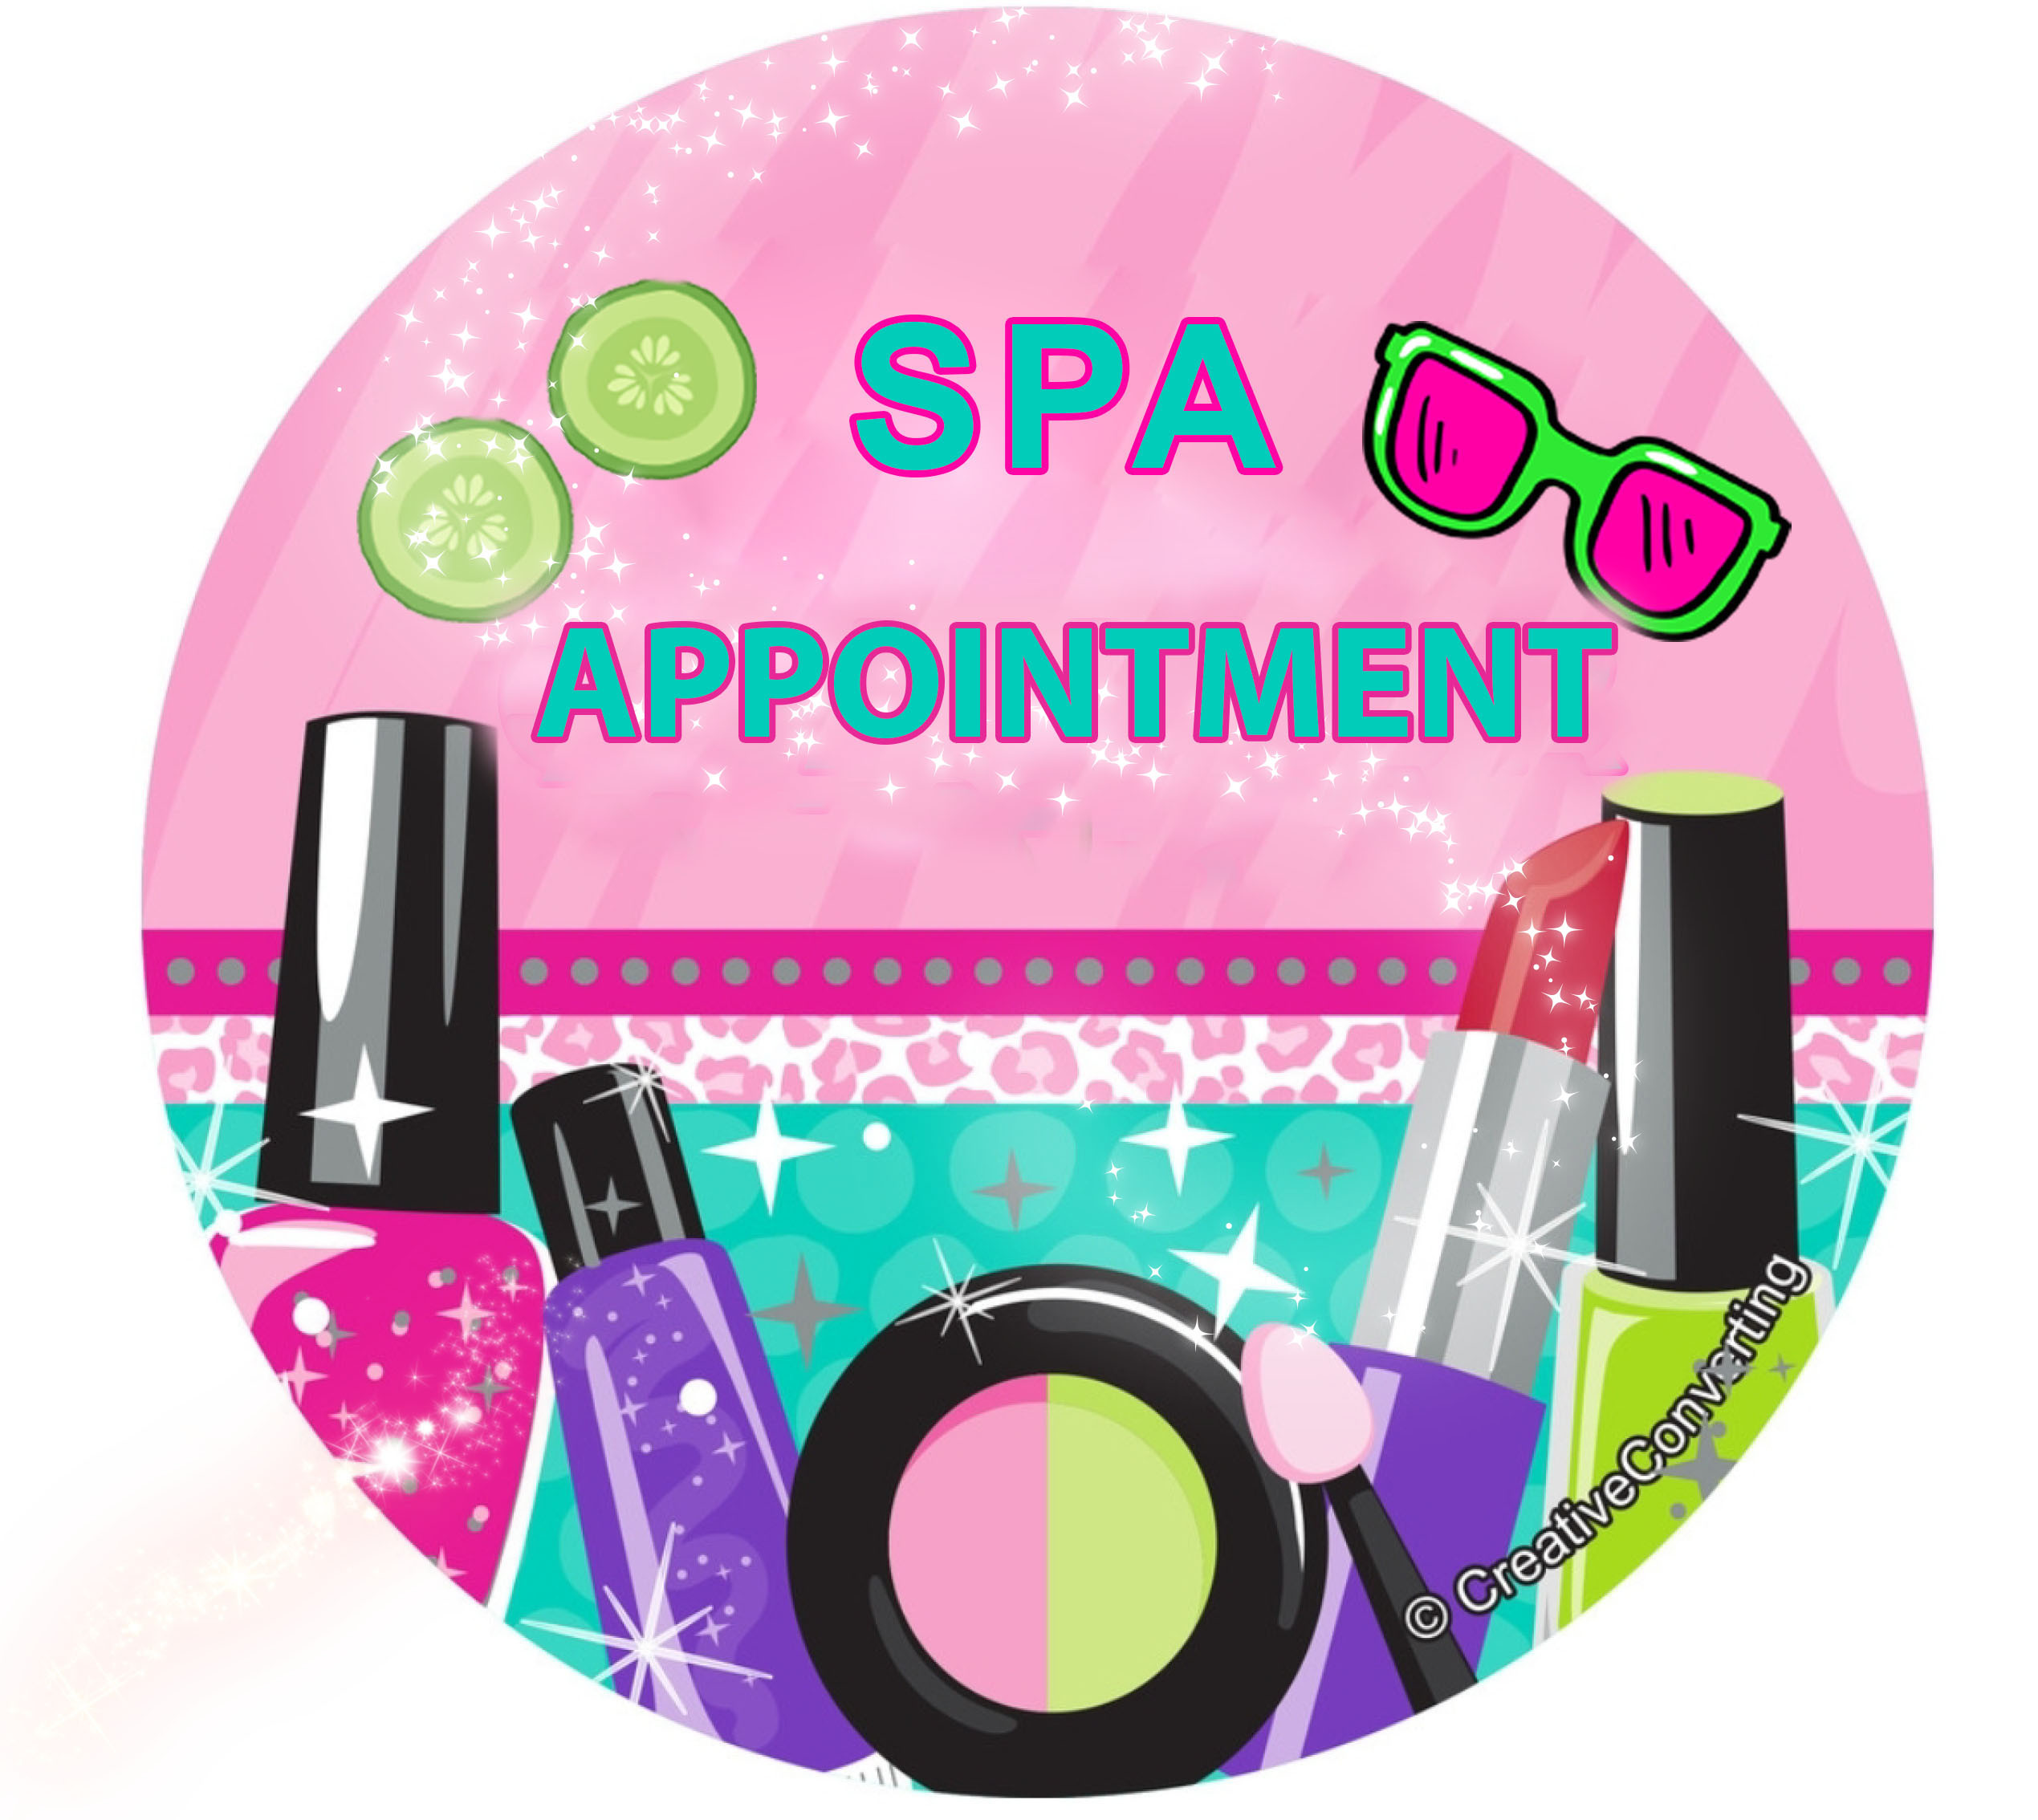 Spa Appointment